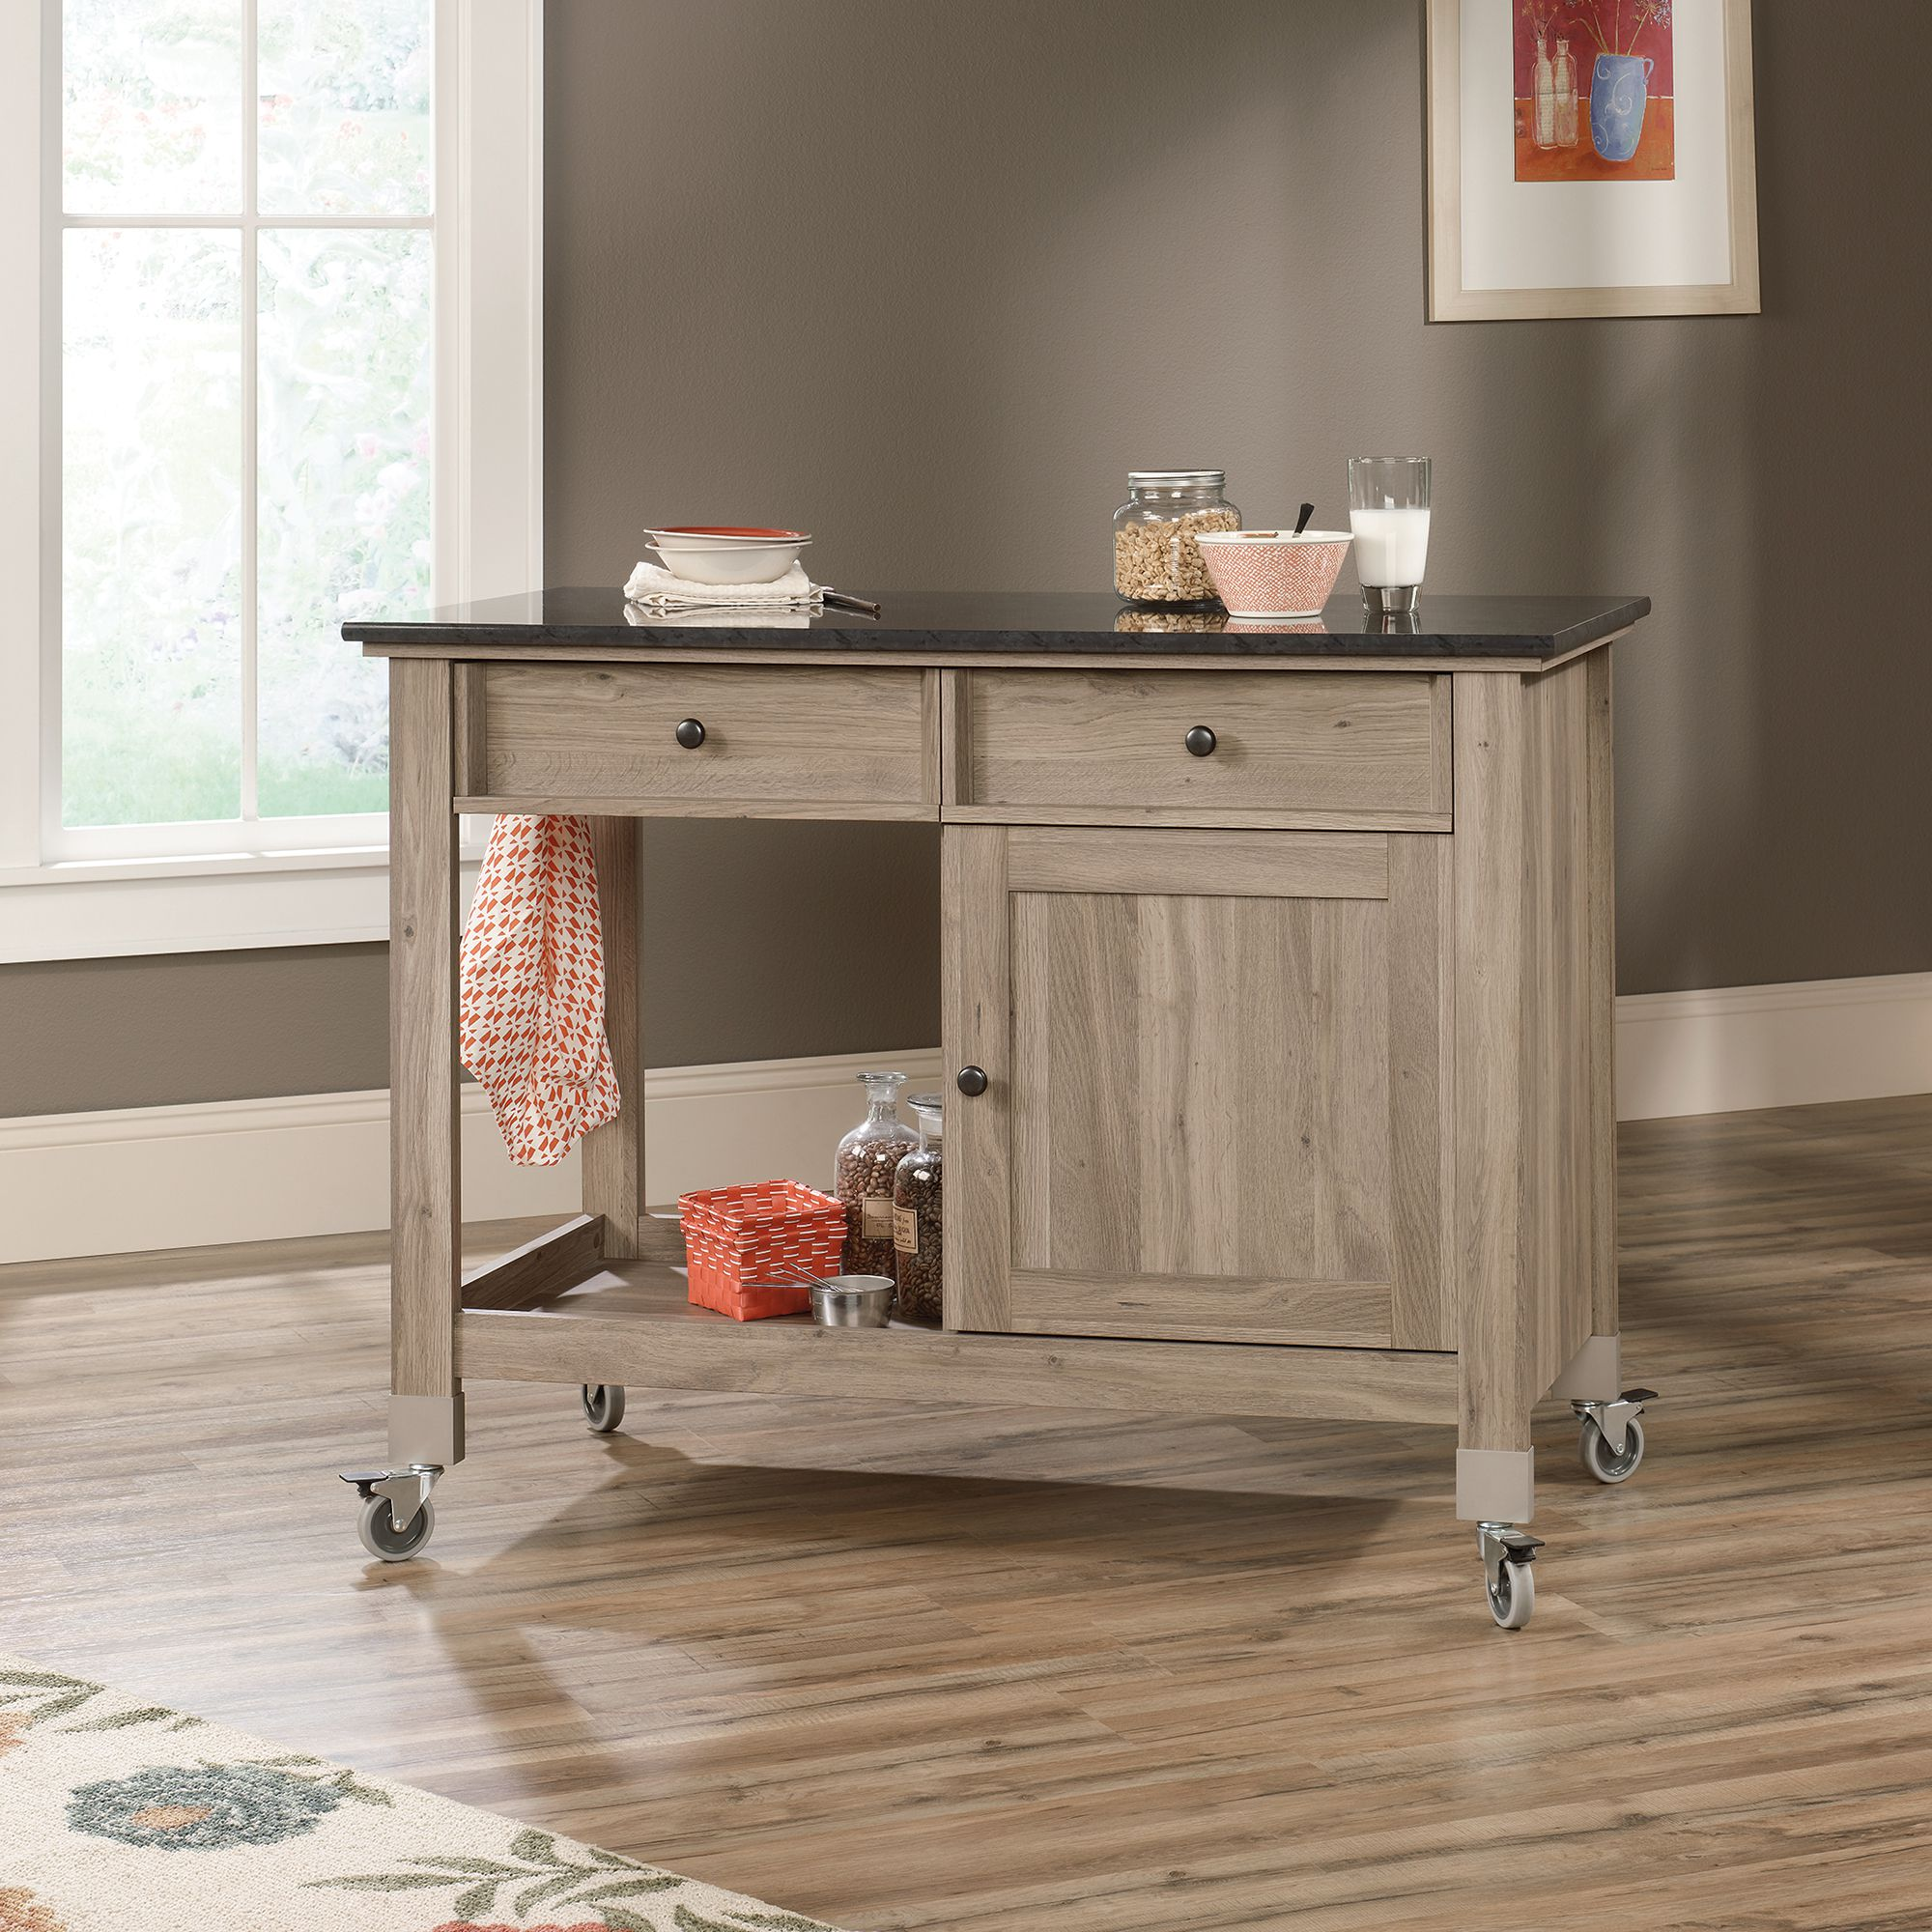 Choose this Classic Rolling Kitchen Island with Dark Top and Wooden Cabinets on Tiny Wheels